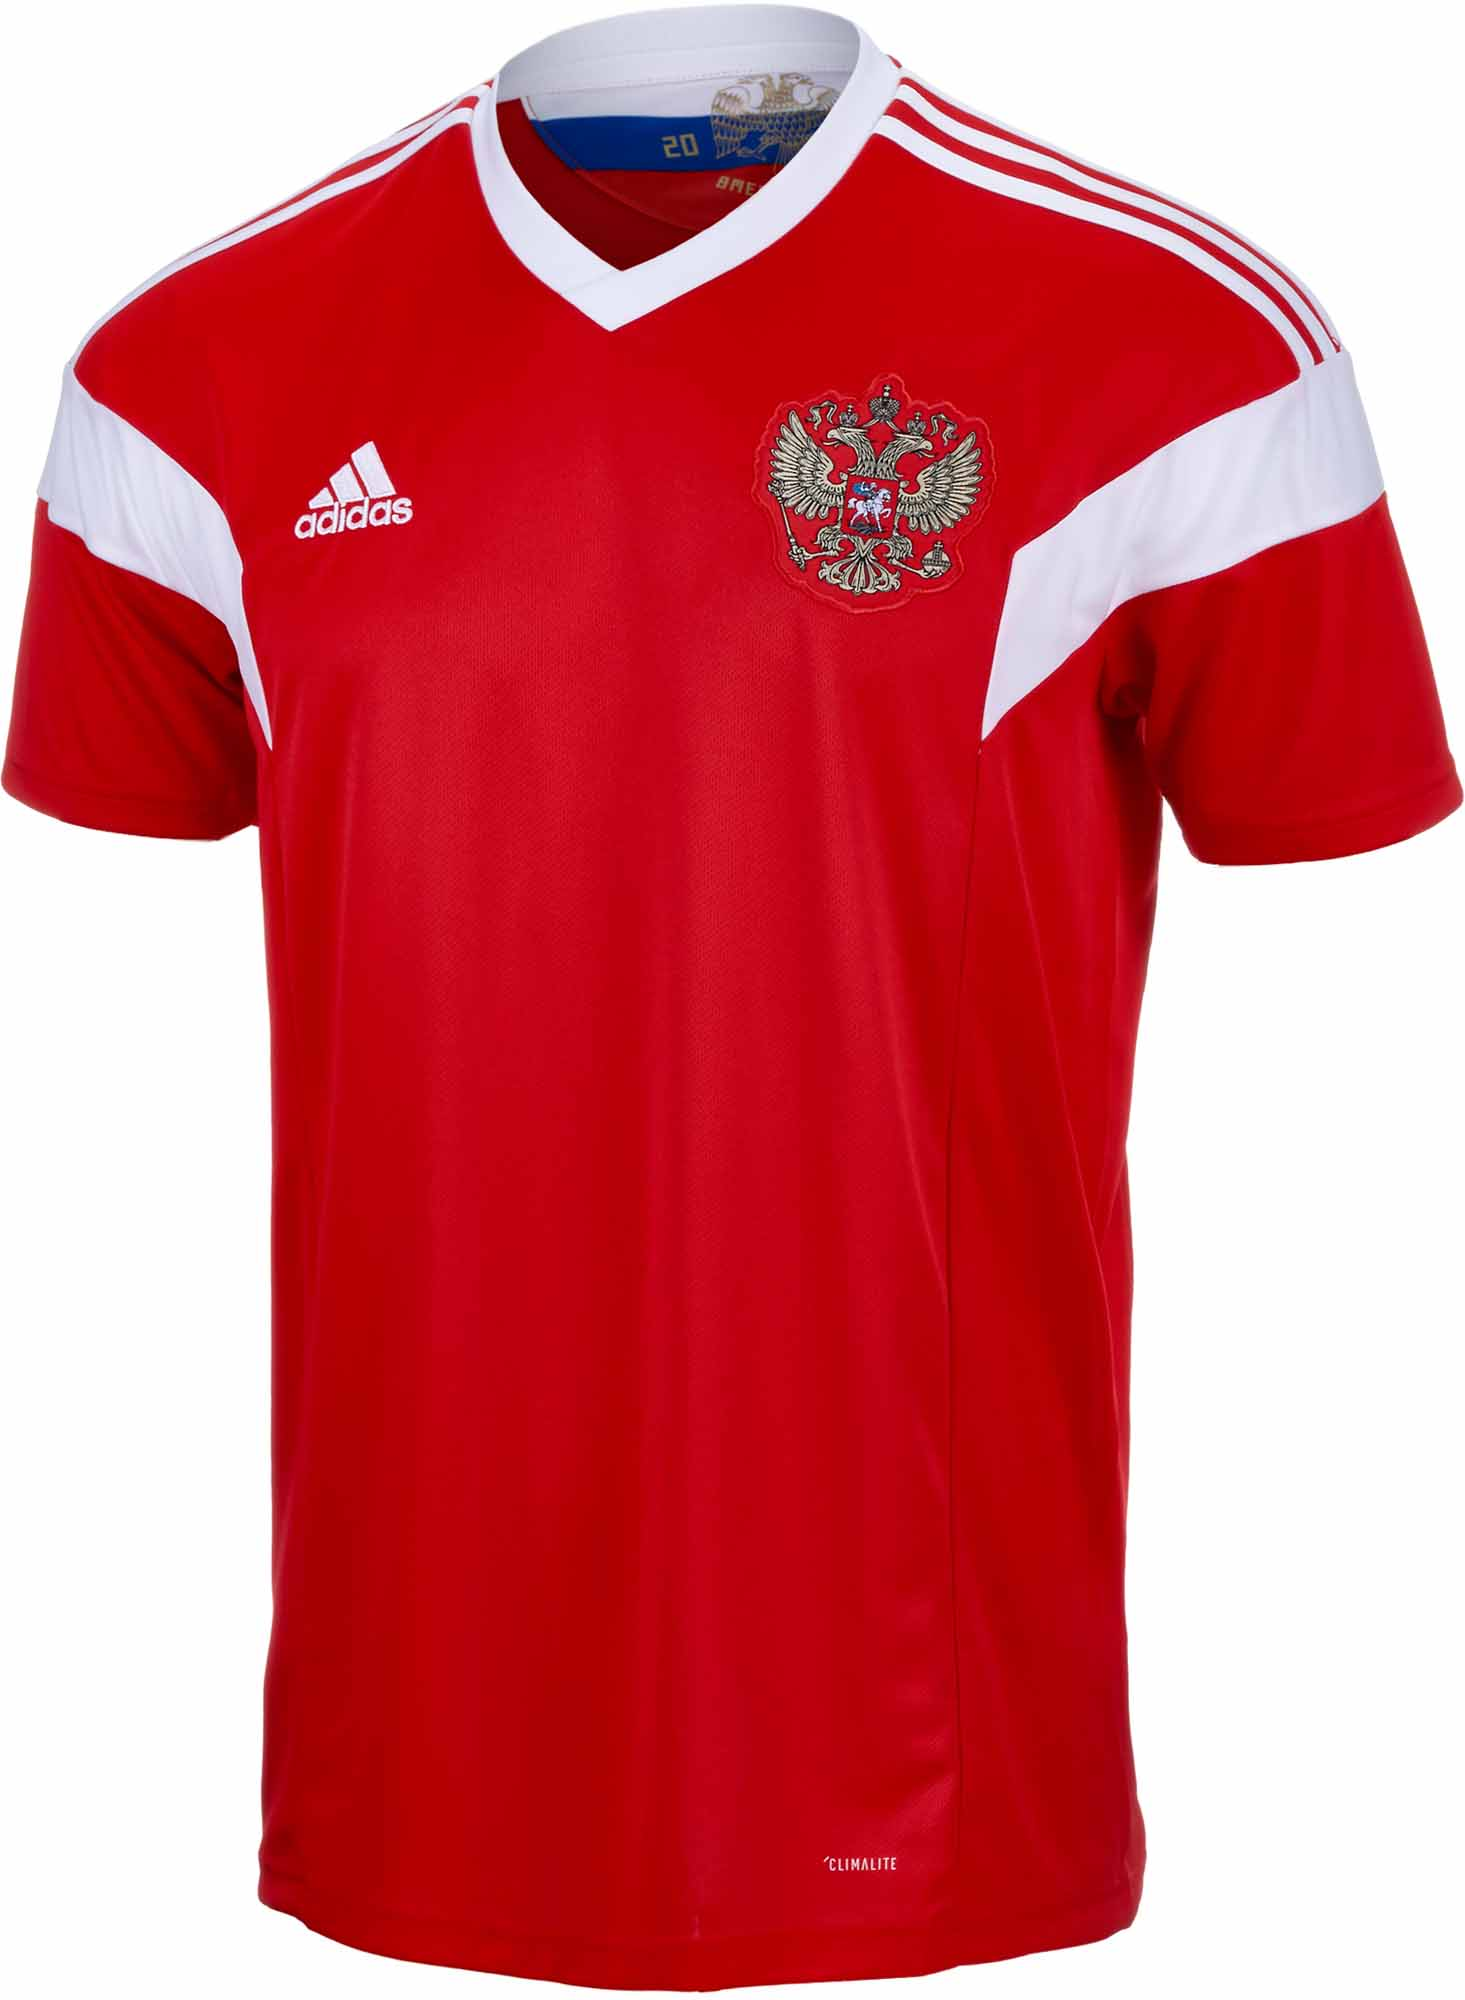 3f37c7725 2018 19 adidas Russia Home Jersey - Soccer Master